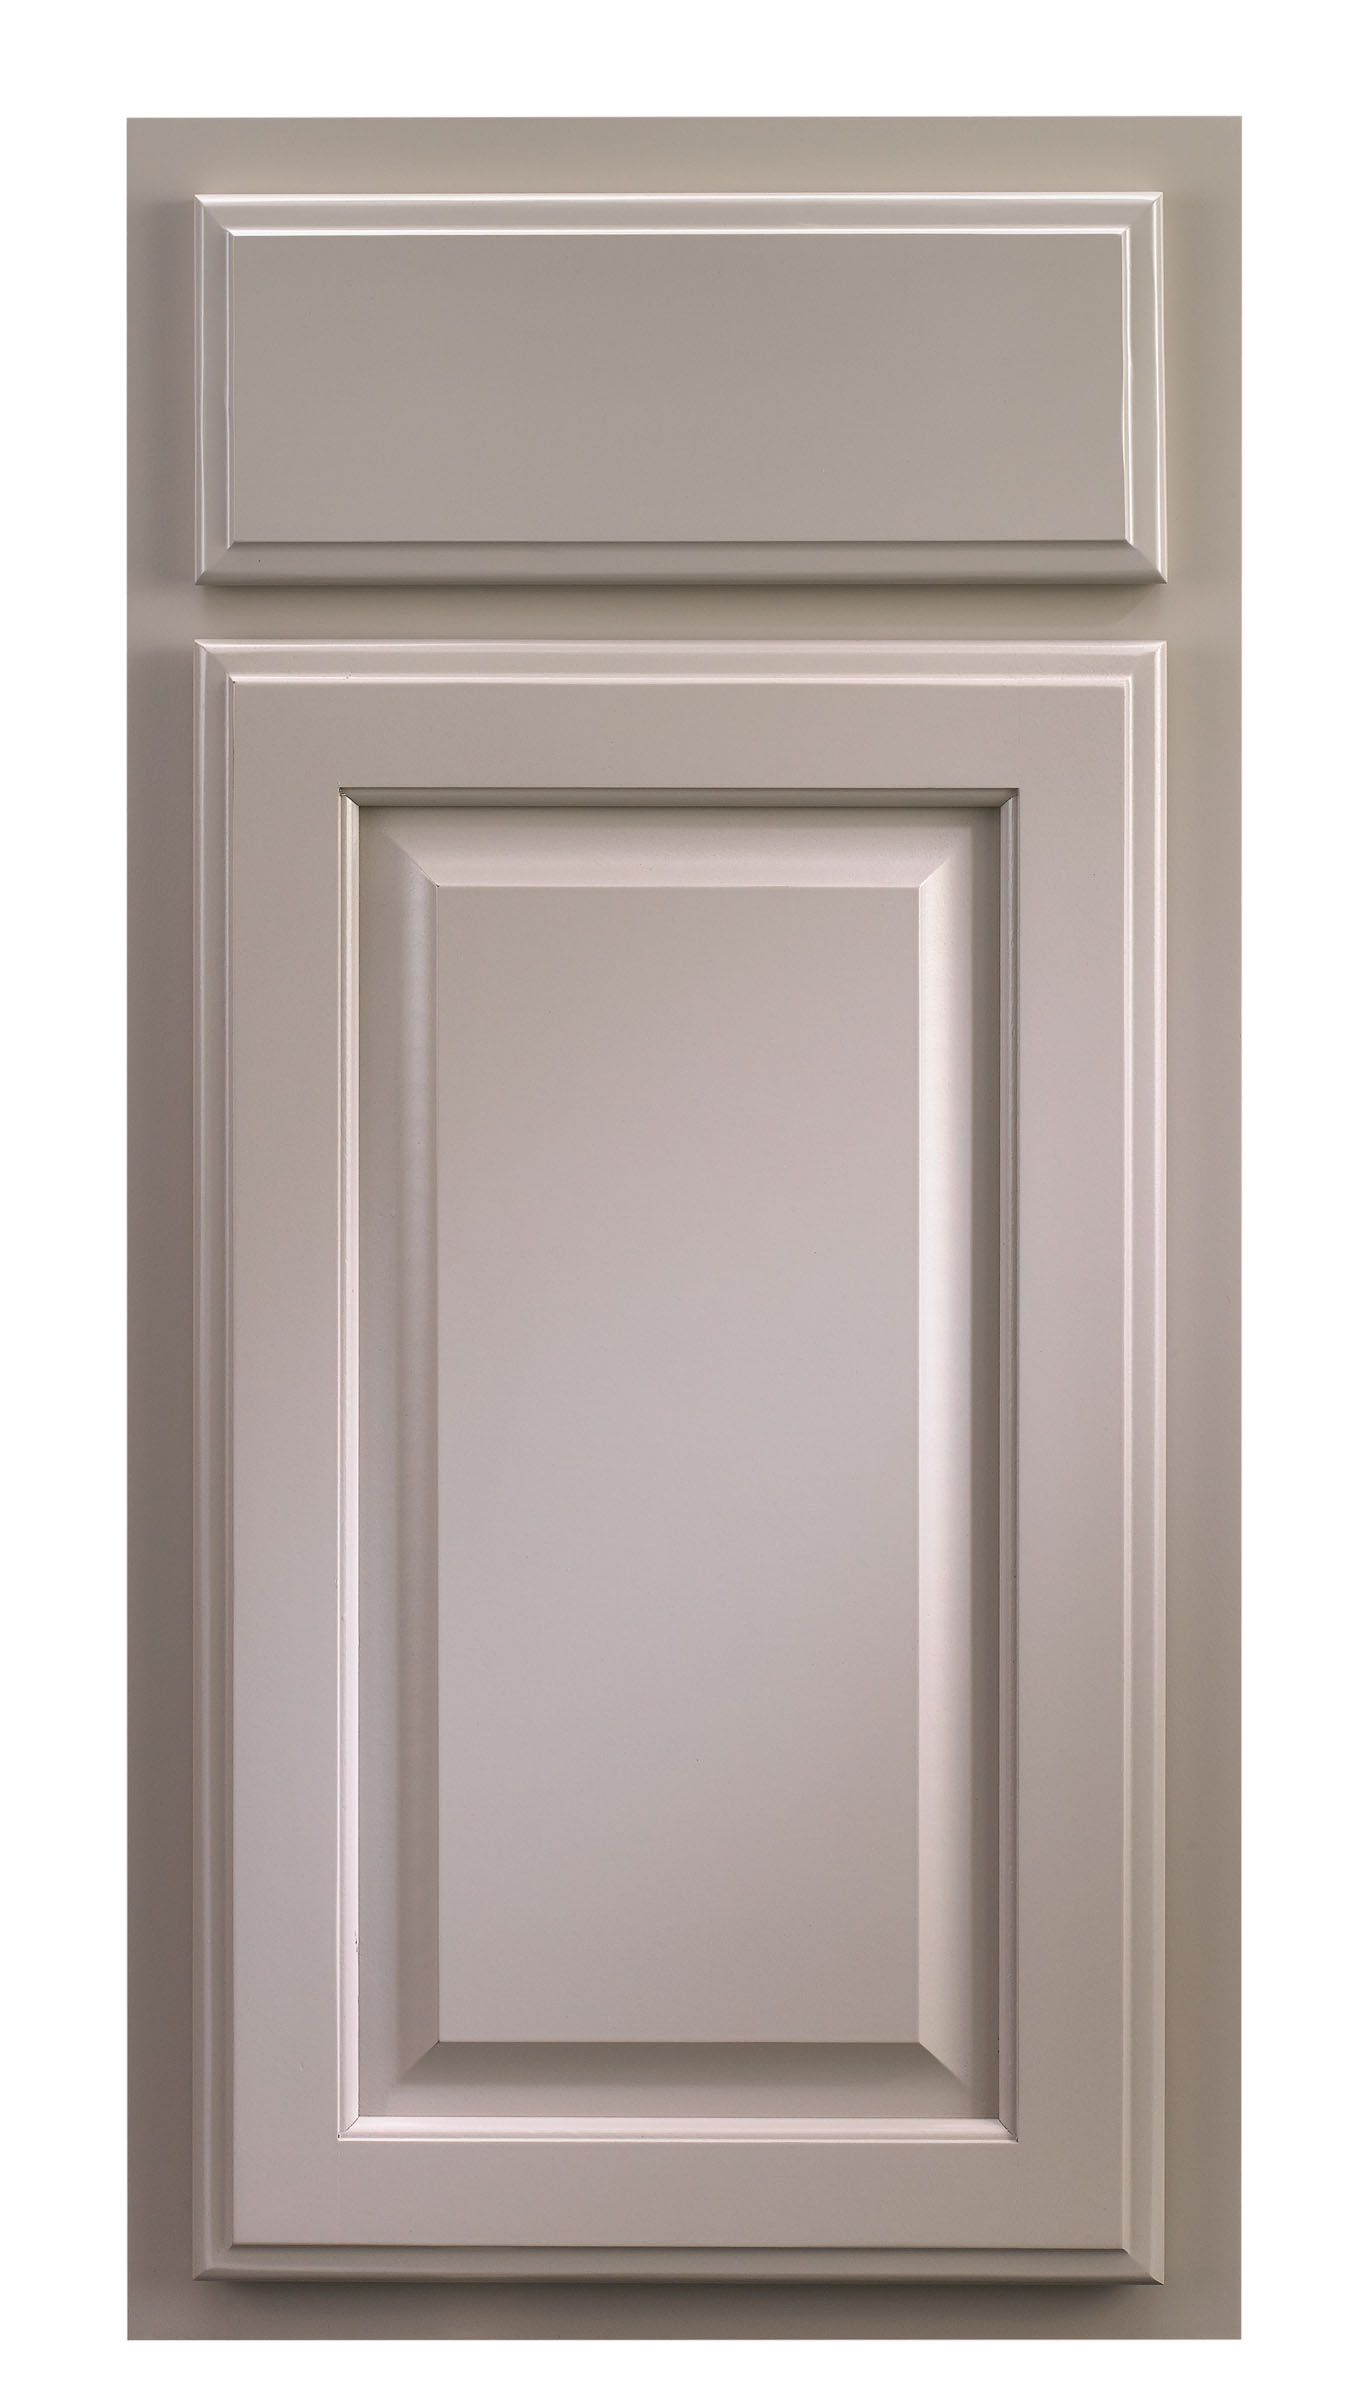 Monarch Door Style  sc 1 st  Rosebud Wood Products & Door Styles - Rosebud Wood Products